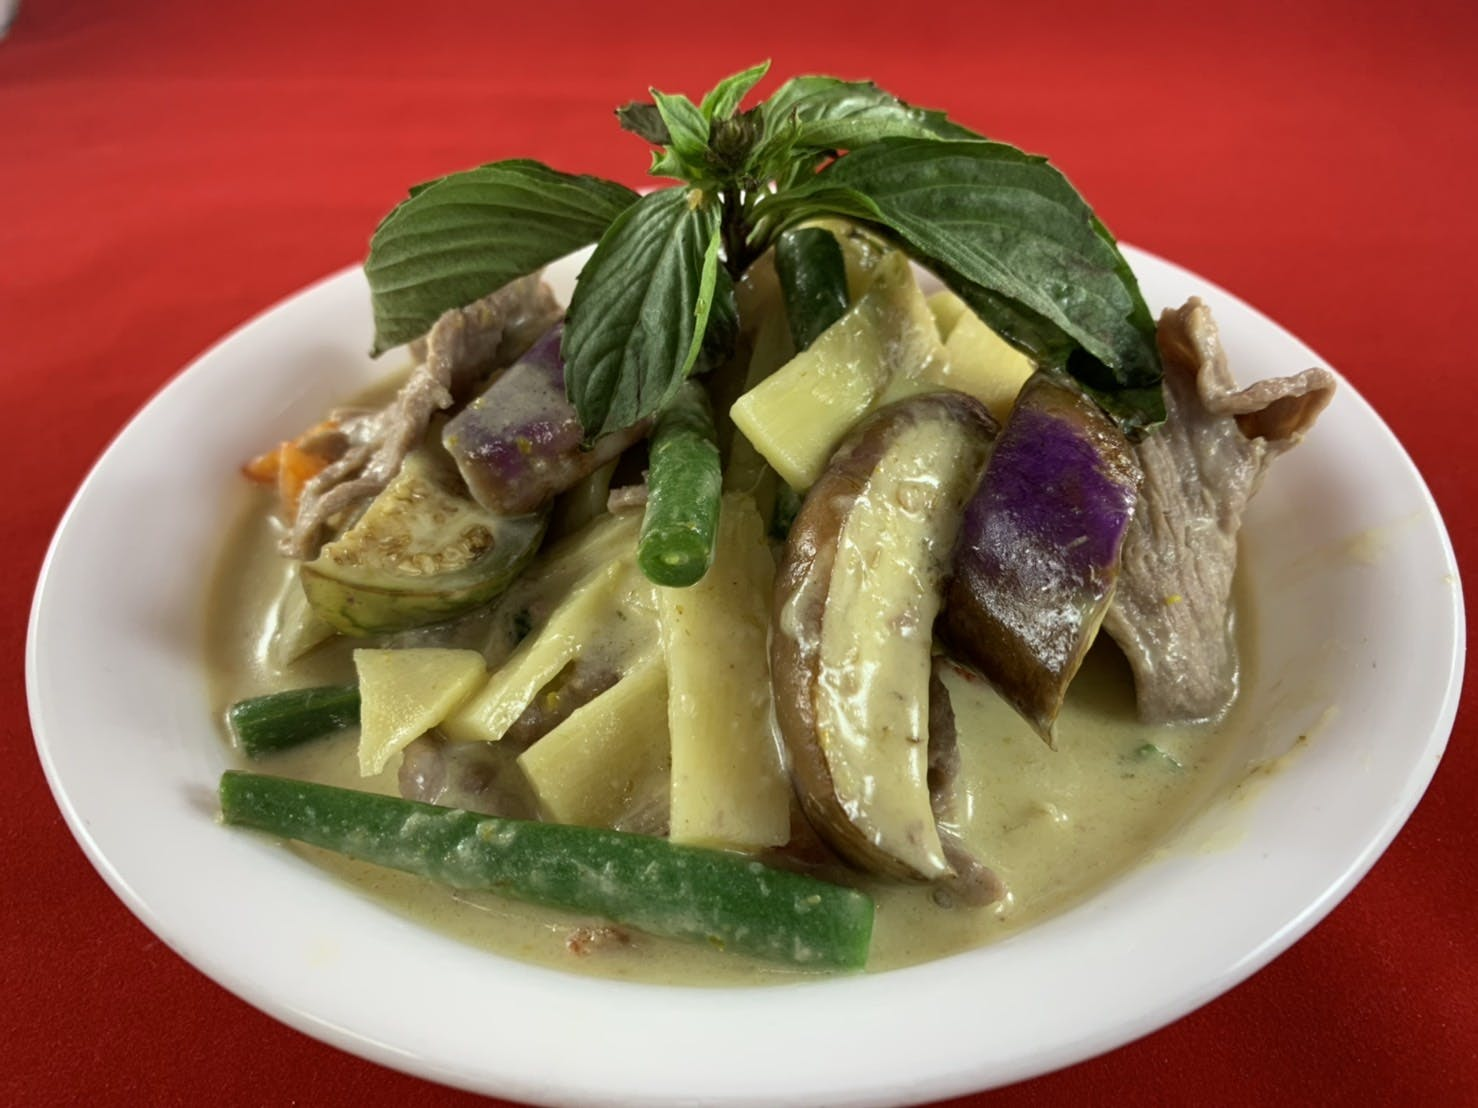 44. Gaeng Ped (Dinner) from Sa-Bai Thong - University Ave in Madison, WI